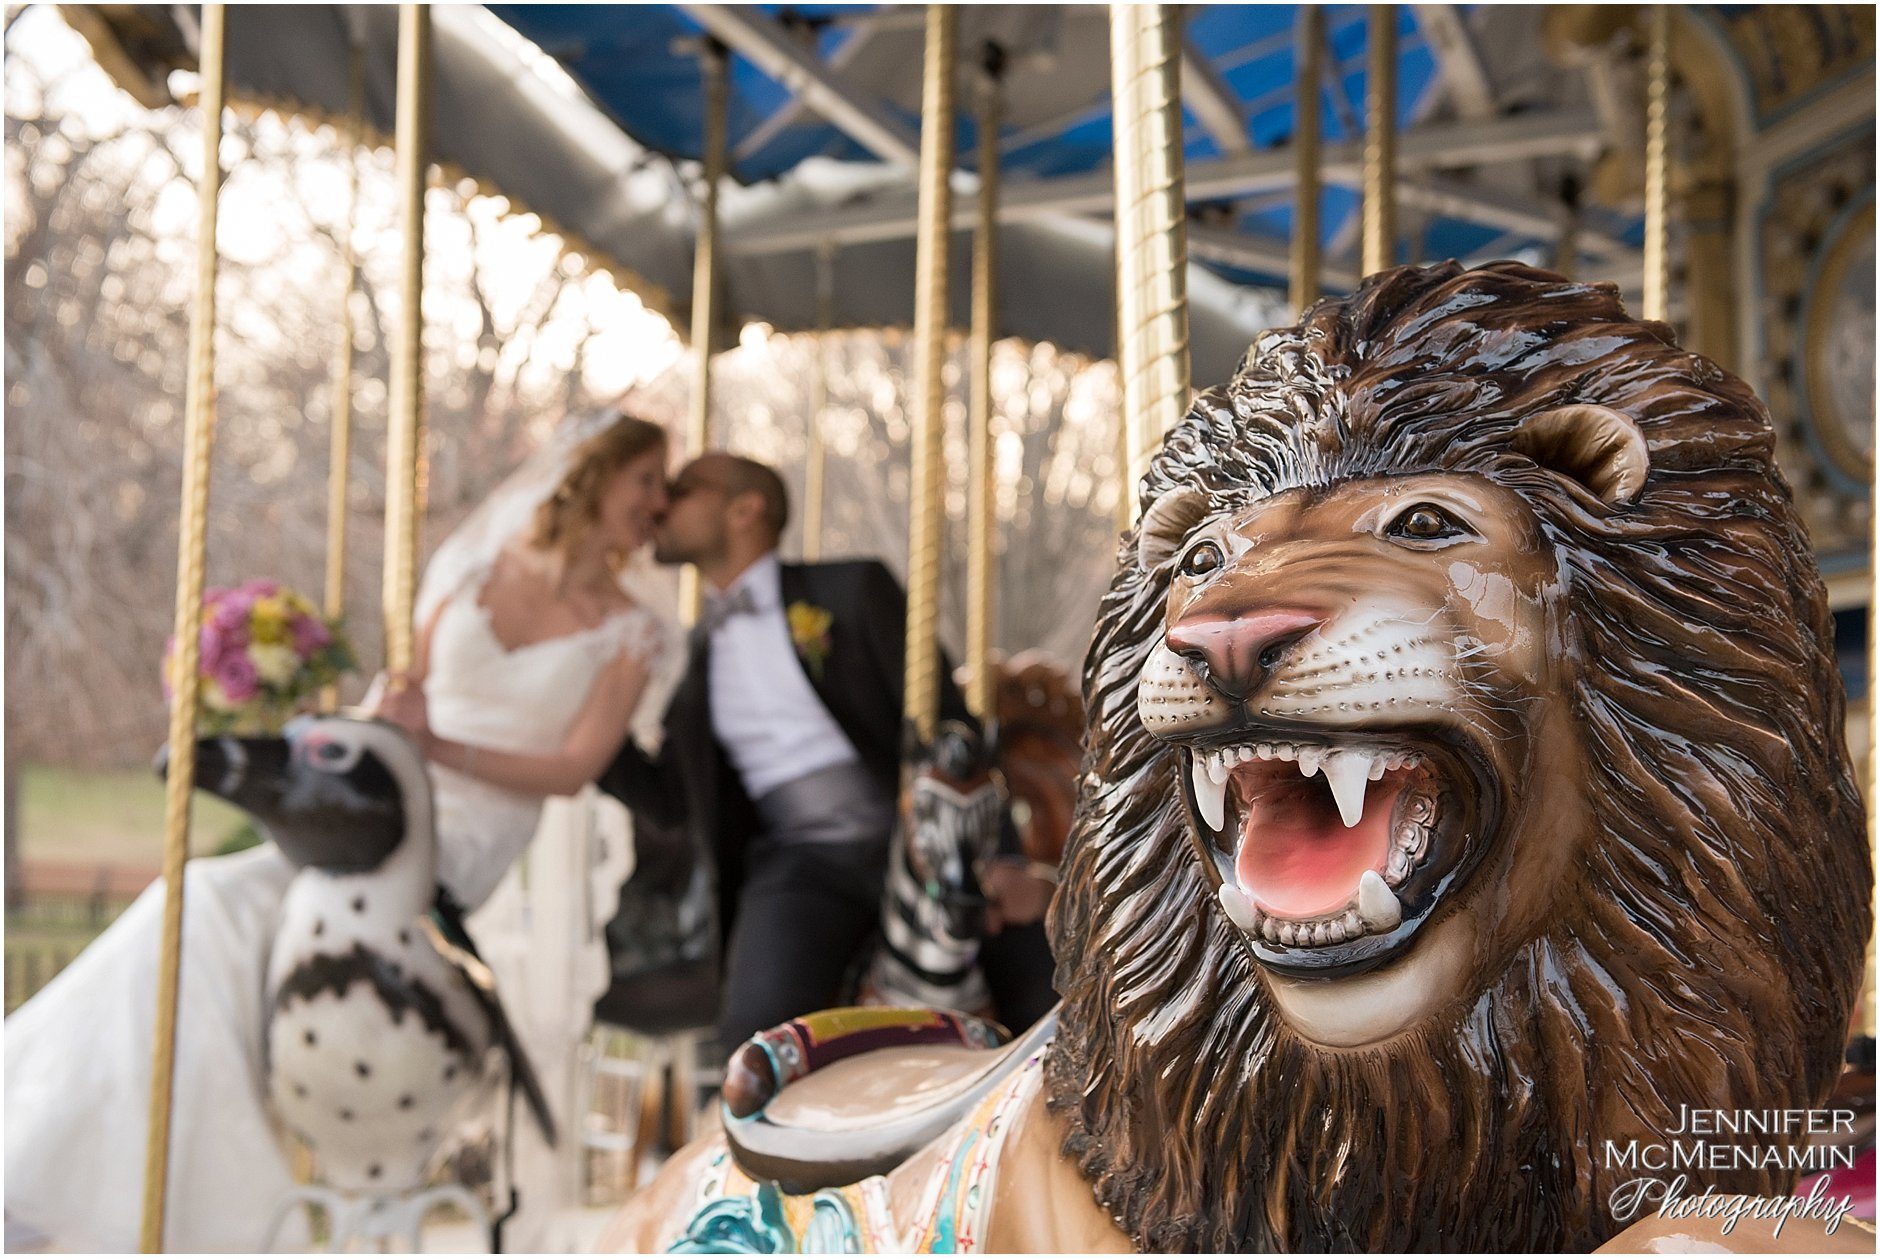 09_MumbauerDouglas_00756_Jennifer-McMenamin-Photography-Baltimore-Zoo-wedding